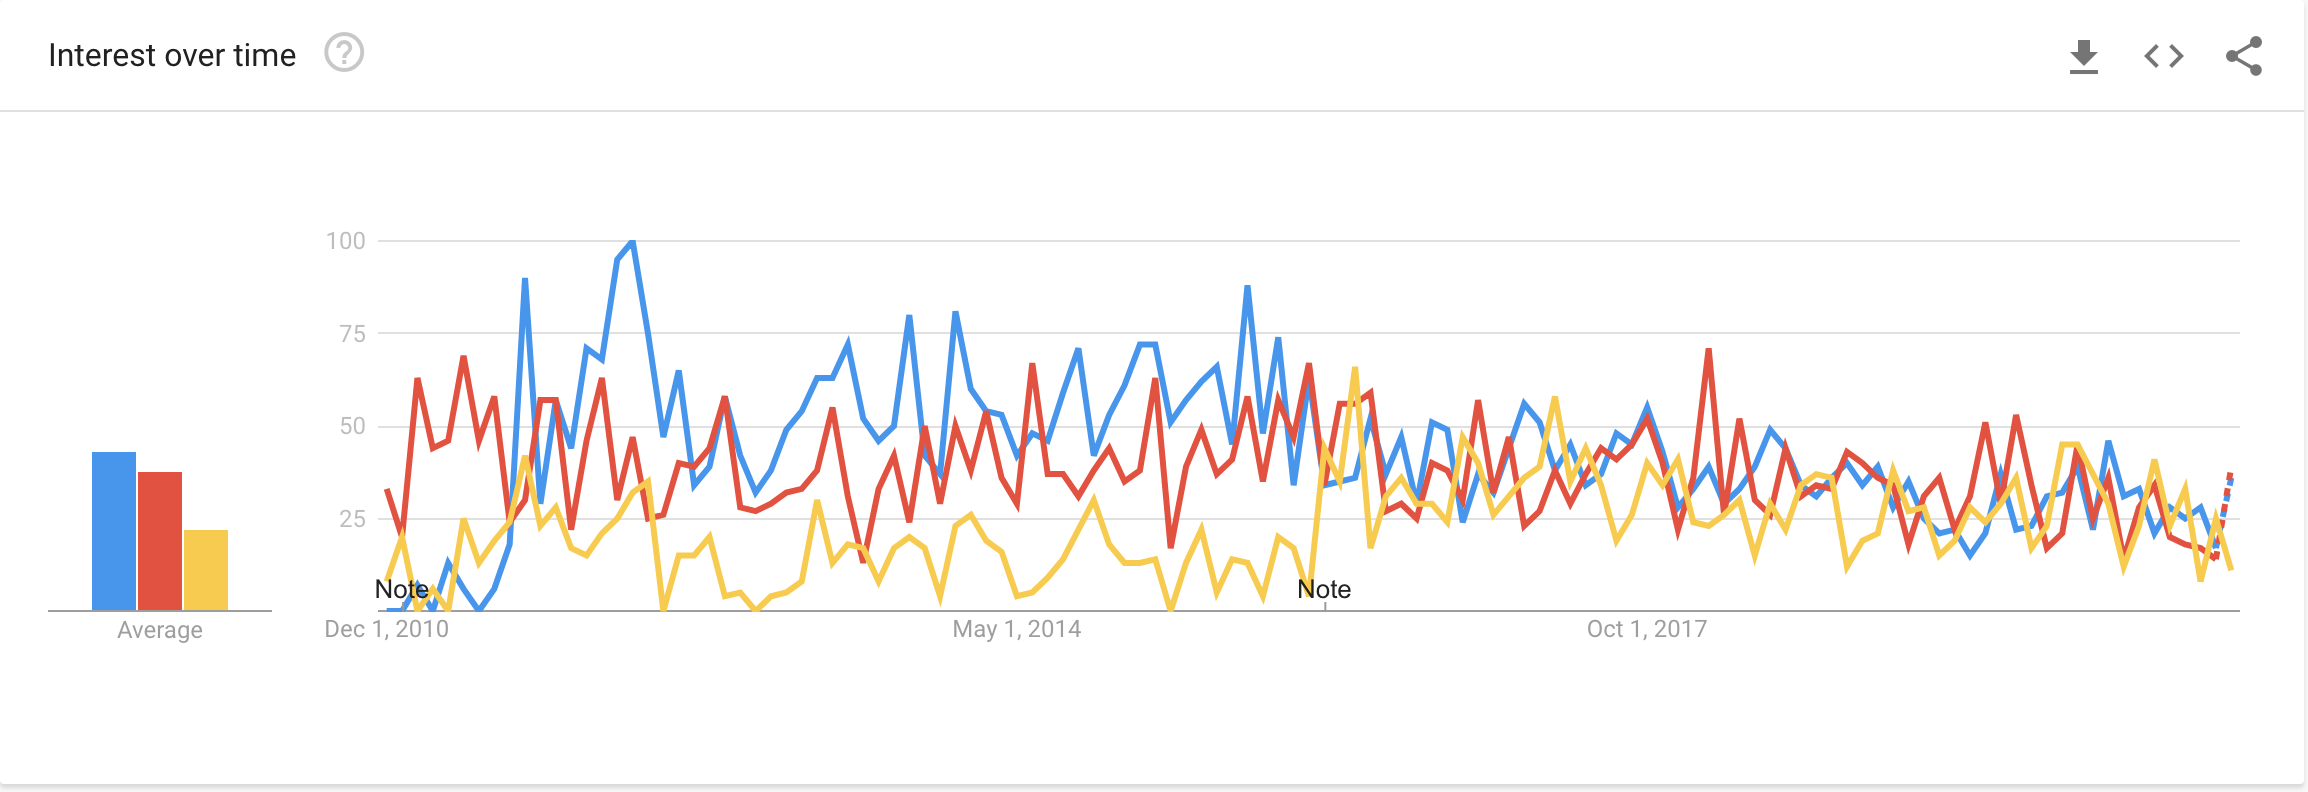 Google Trends comparing The Lean Startup book against Crossing the Chasm and The Innovator's Dilemma